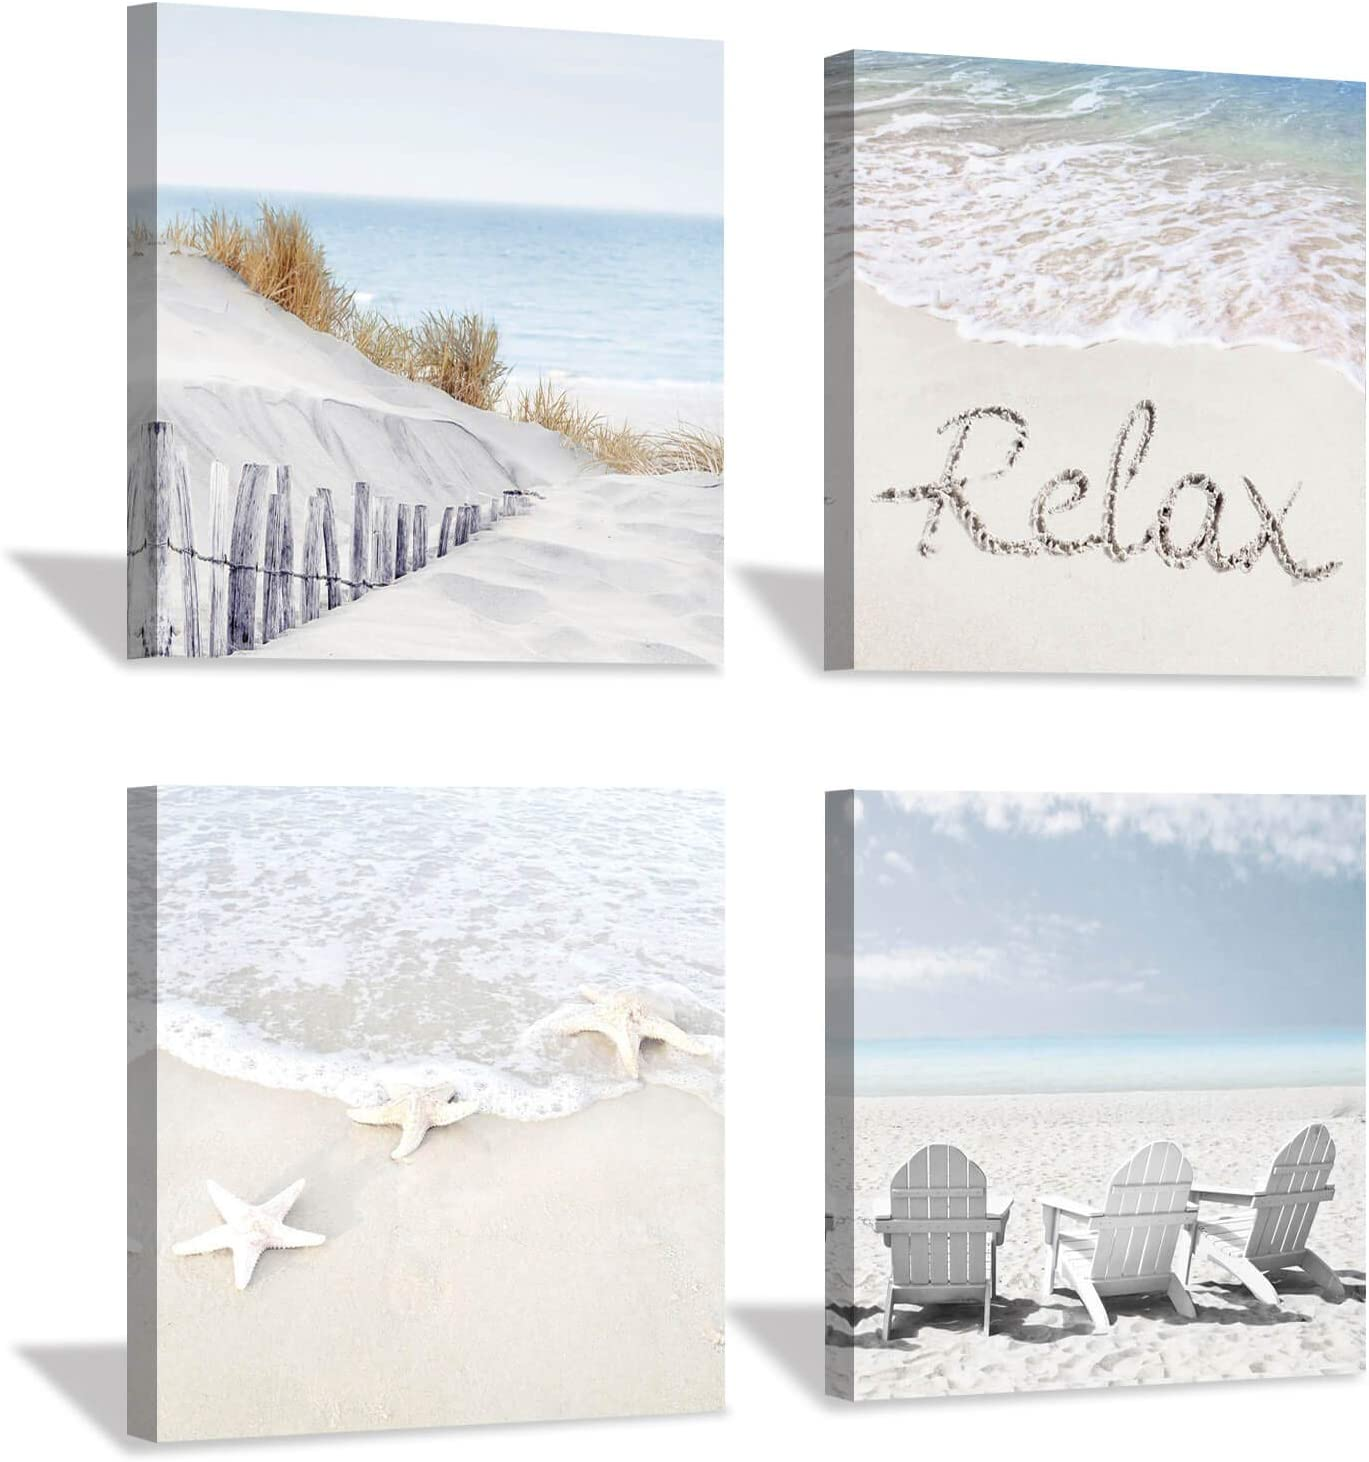 Coastal Artwork Beach Wall Art Starfish Chairs On Sand Painting With Word Picture On Canvas For Living Room 16 X 16 X 4 Panels Posters Prints